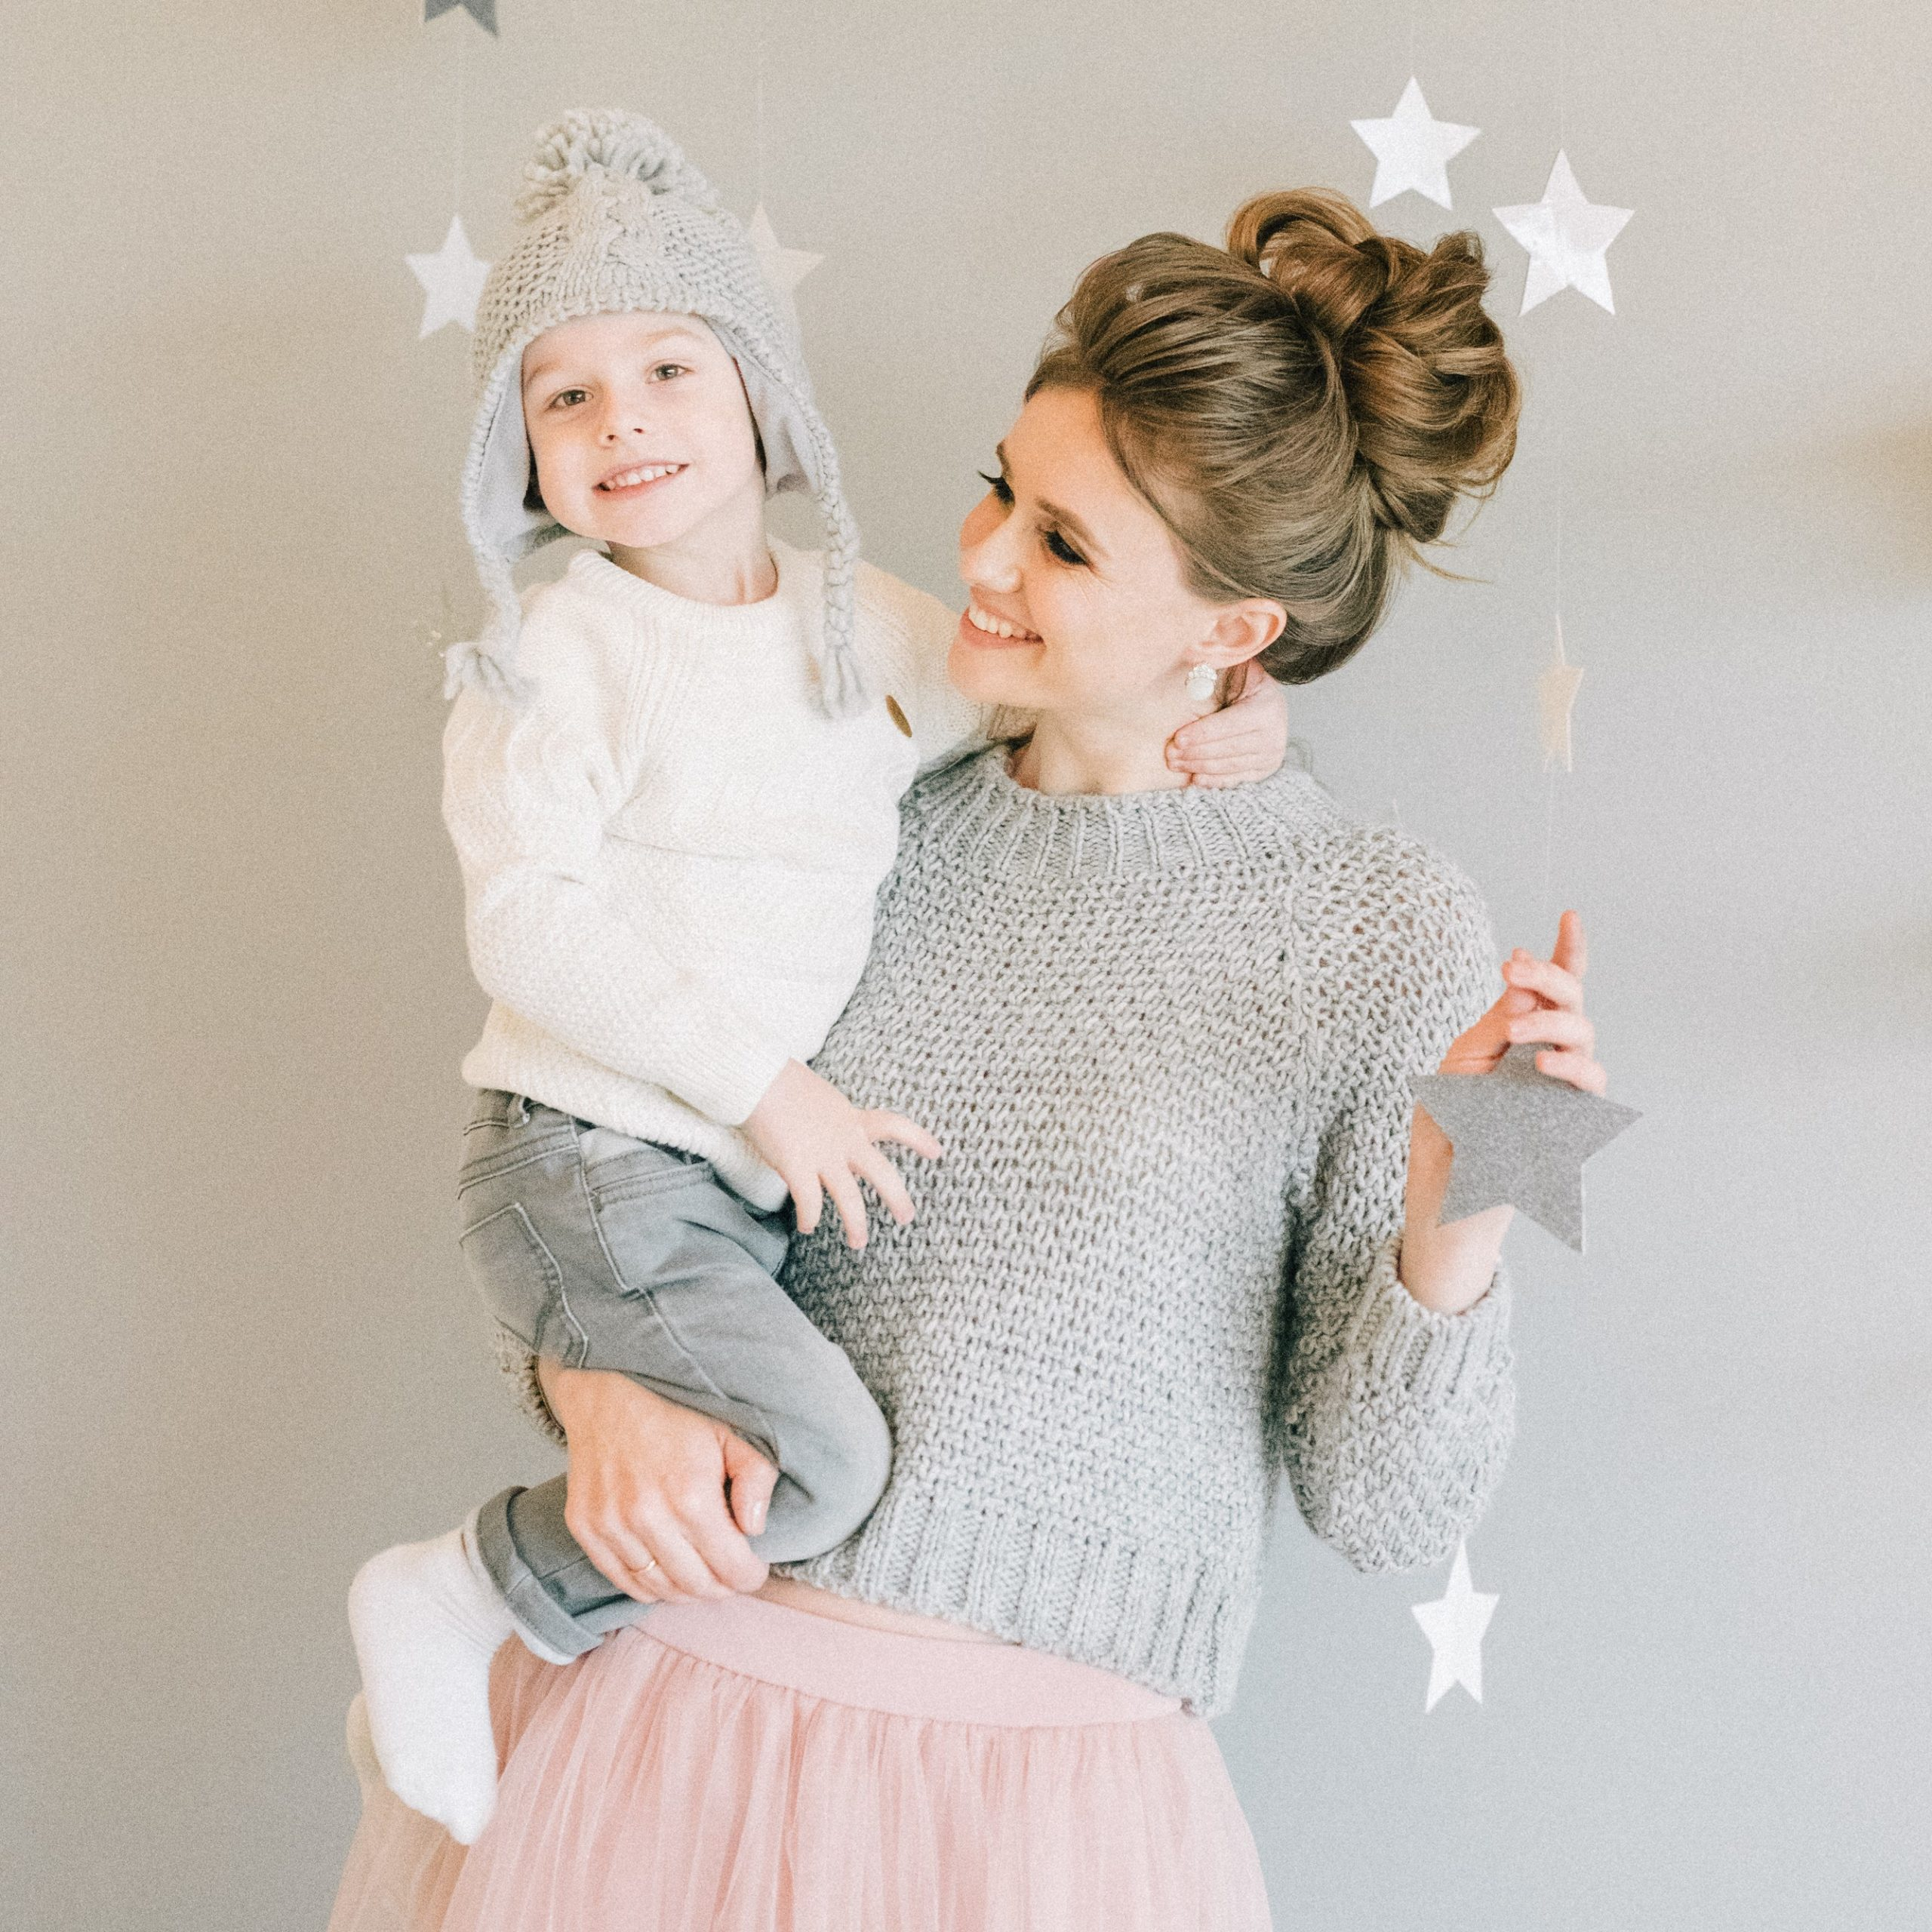 woman with her little girl